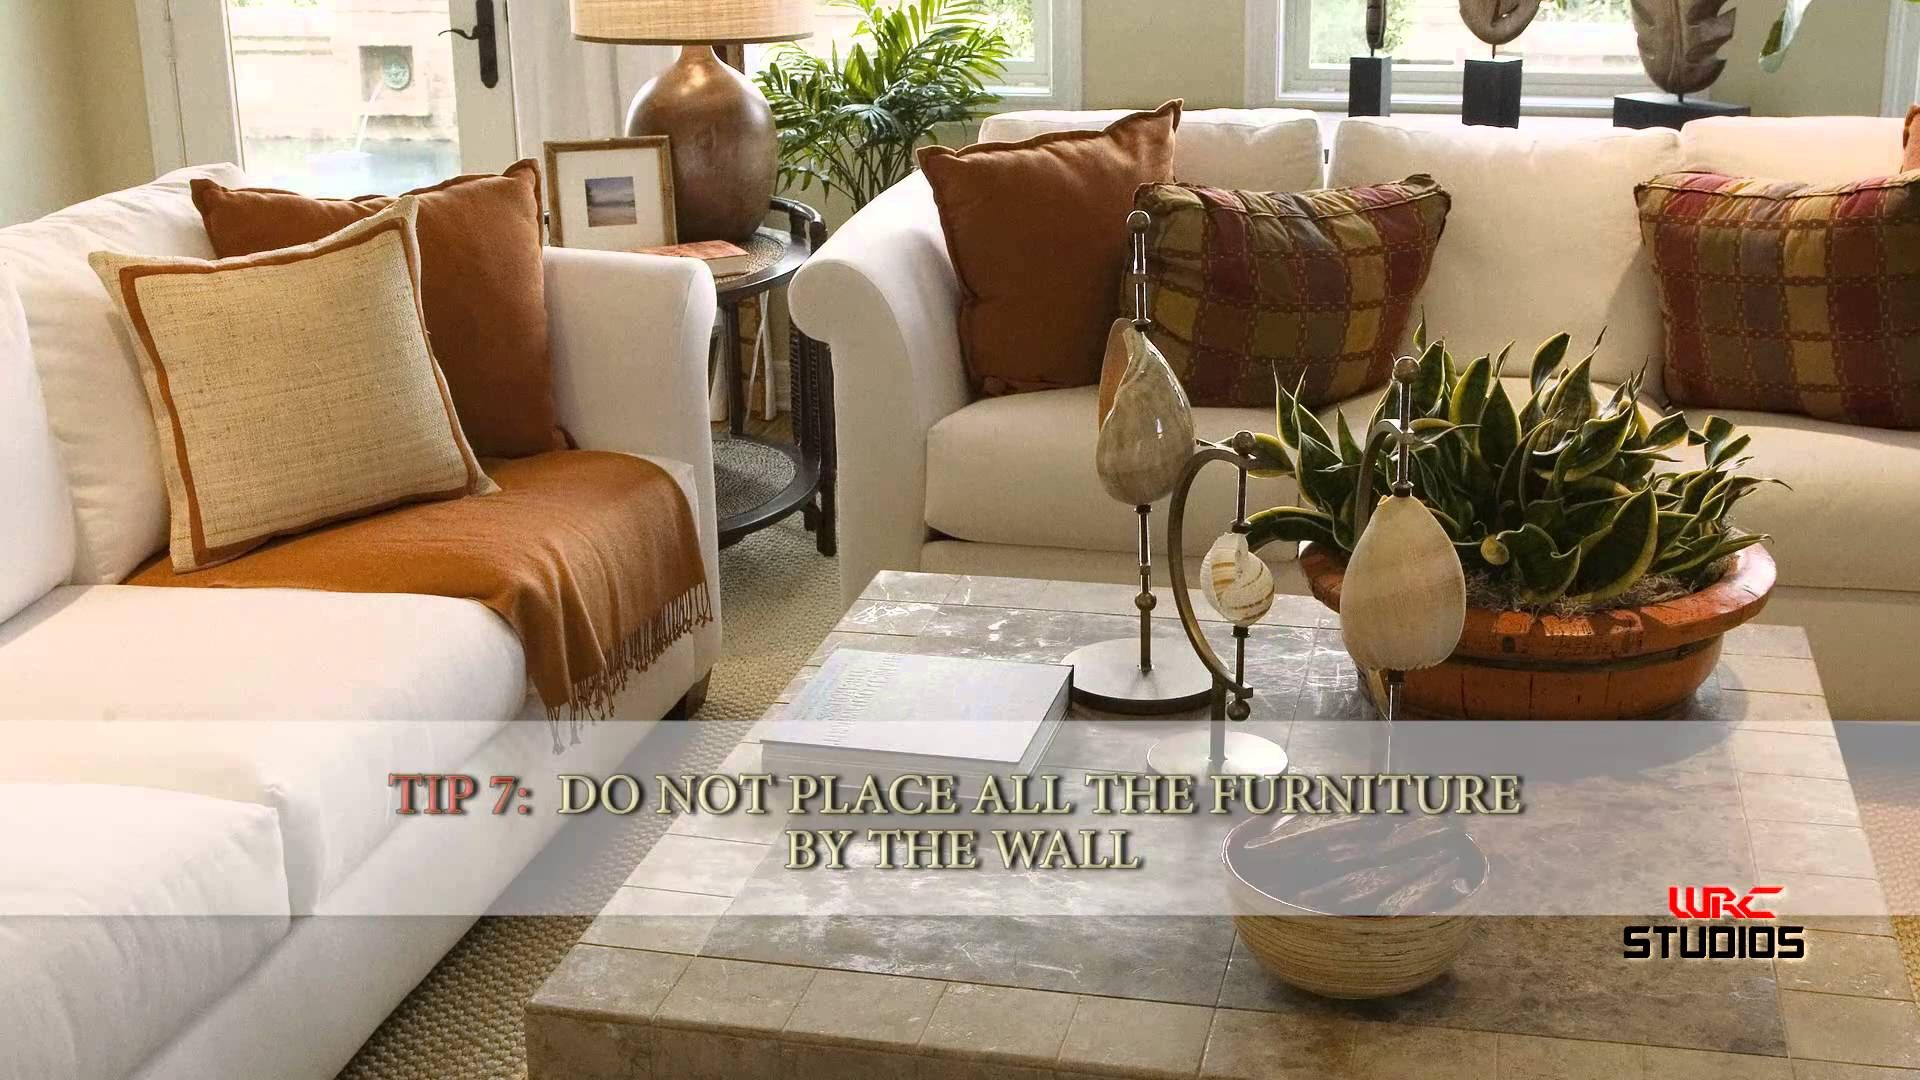 How To Arrange Your Living Room Furniture Youtube Livingroom. Living Room Office Furniture. 35 Industrial Home Office Design Ideas Home Office Lighting. 25 Office Rug Onhome Office